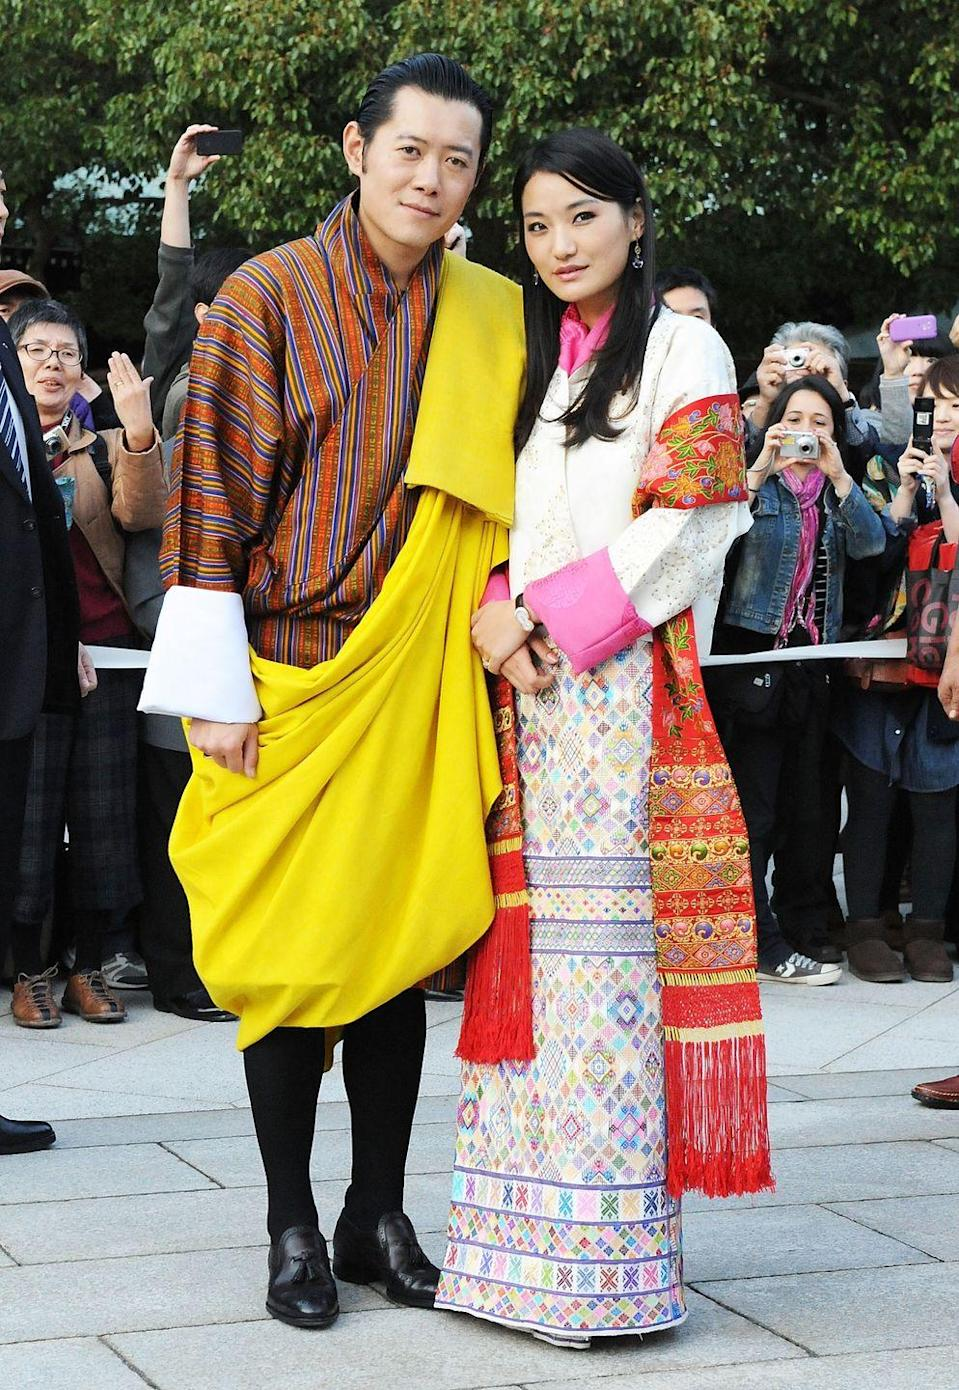 """<p>Jetsun became a queen at age 21 when she married the King of Bhutan in 2011. Before she met the """"Dragon King"""" (a nickname of his), she attended Regent's College in London, studying international relations, psychology, and art history. They share the experience of British schooling, as the king attended Oxford for his studies. </p>"""